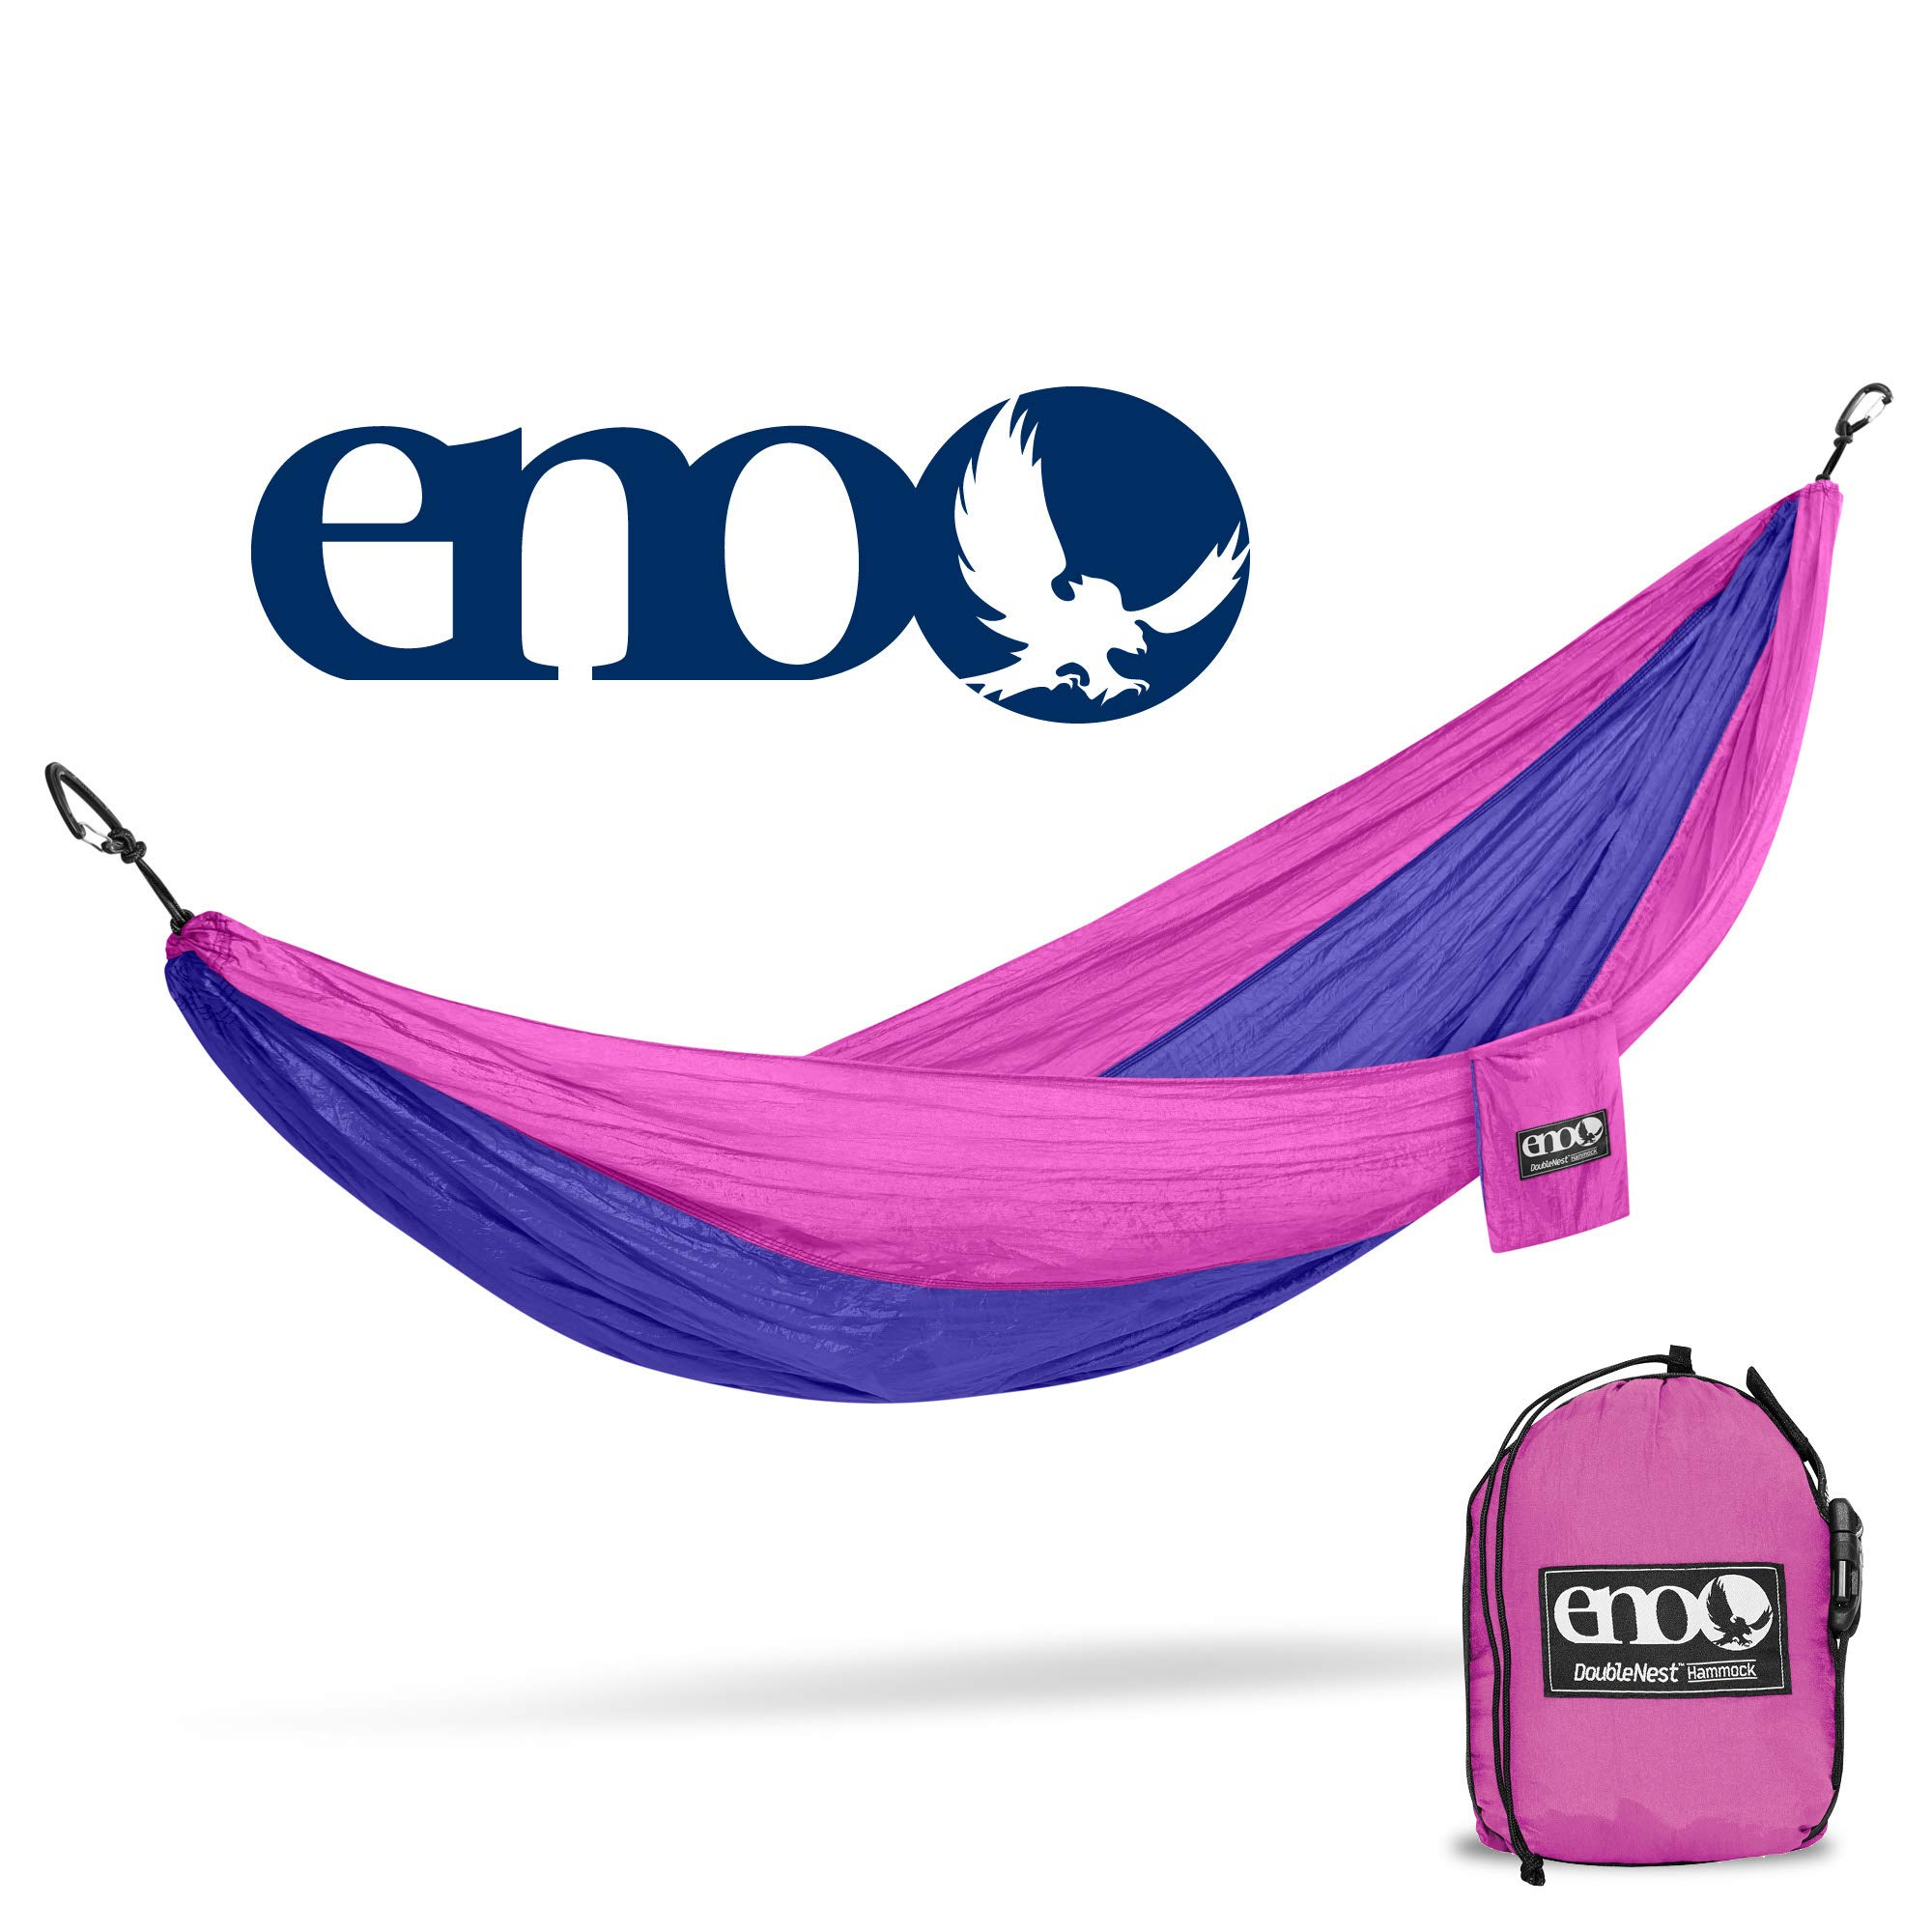 ENO - Eagles Nest Outfitters DoubleNest Hammock, Portable Hammock for Two, Purple/Fuchsia